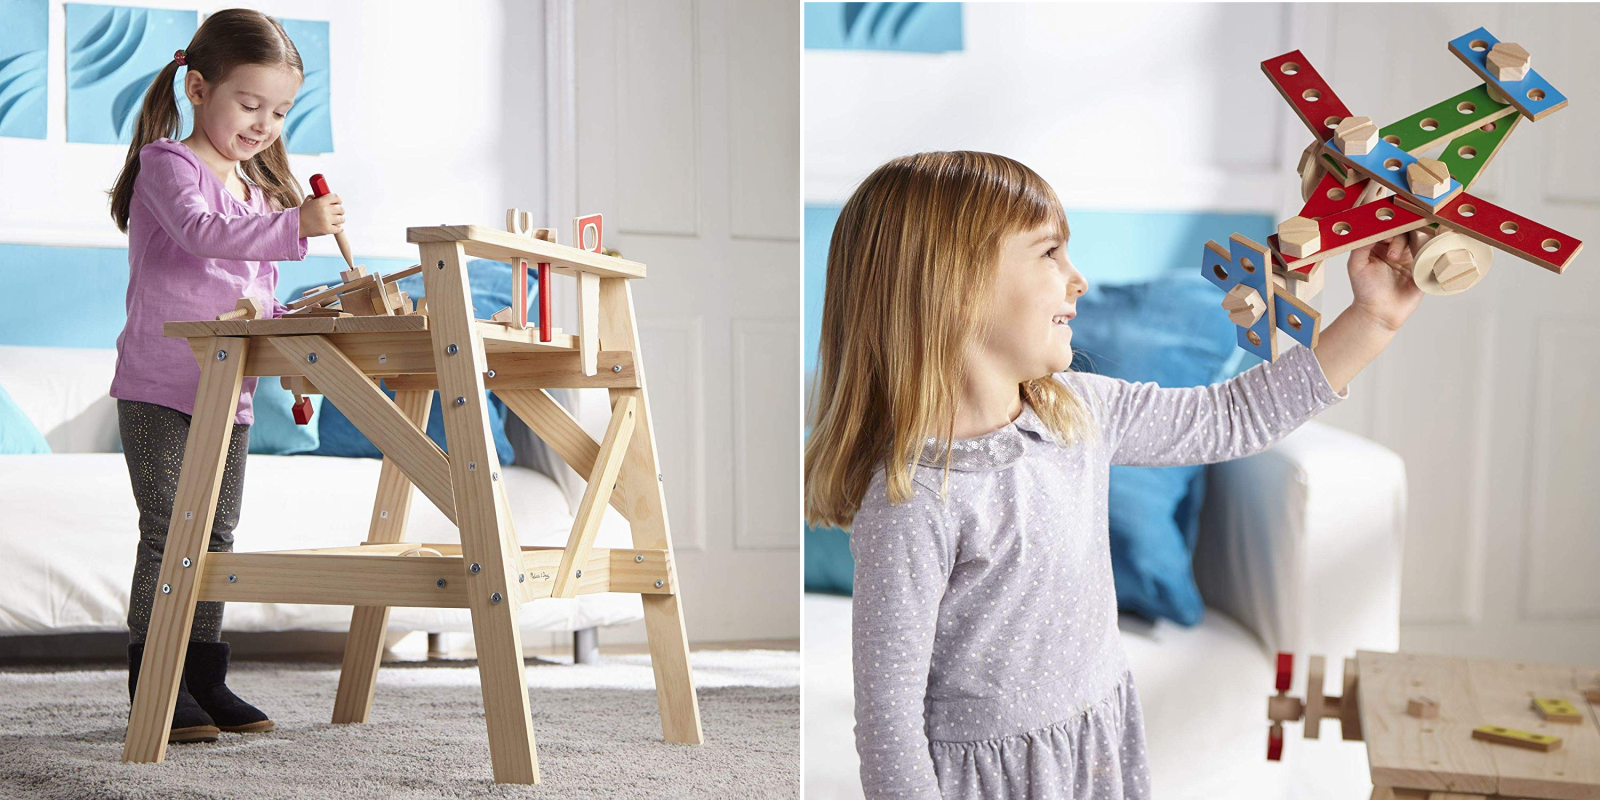 Get the Melissa & Doug Wooden Workbench at one of its best prices yet: $49 (Reg. up to $100)